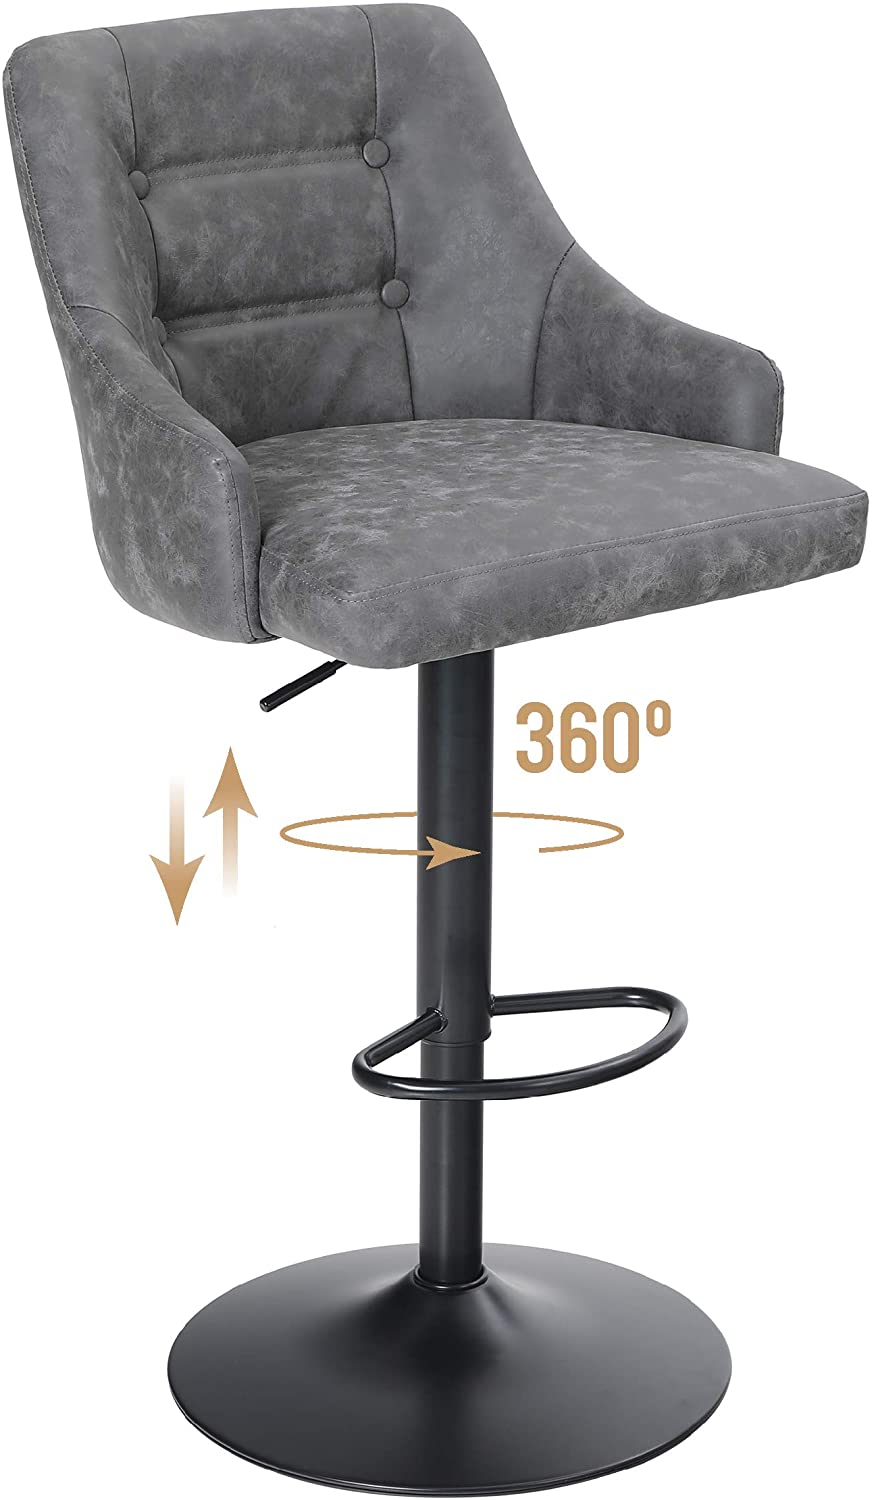 ALPHA HOME 2021 Swivel Bar Stool Same day shipping Adjustable Ba Height Airlift Counter